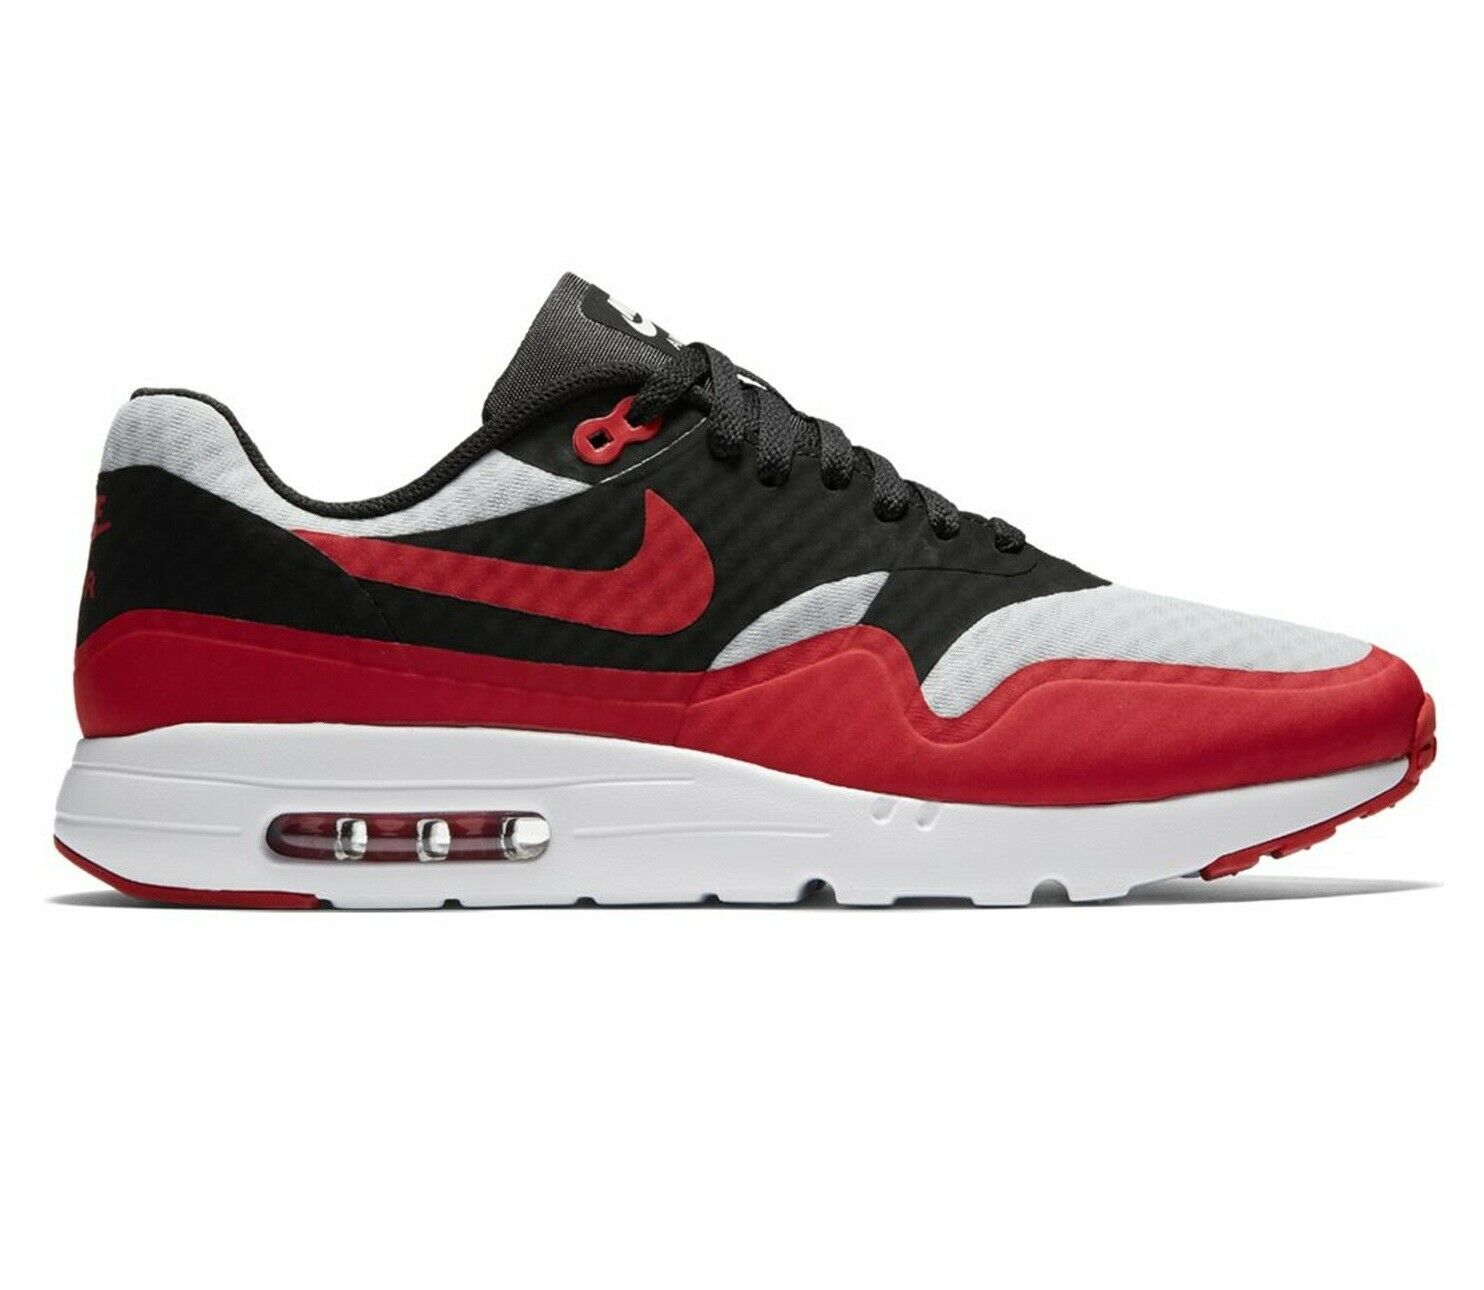 Air Max 90 Ultra Moire Iridescent nike air max 1 ultra essential pure platinum gym red black 819476 005 mens  shoes